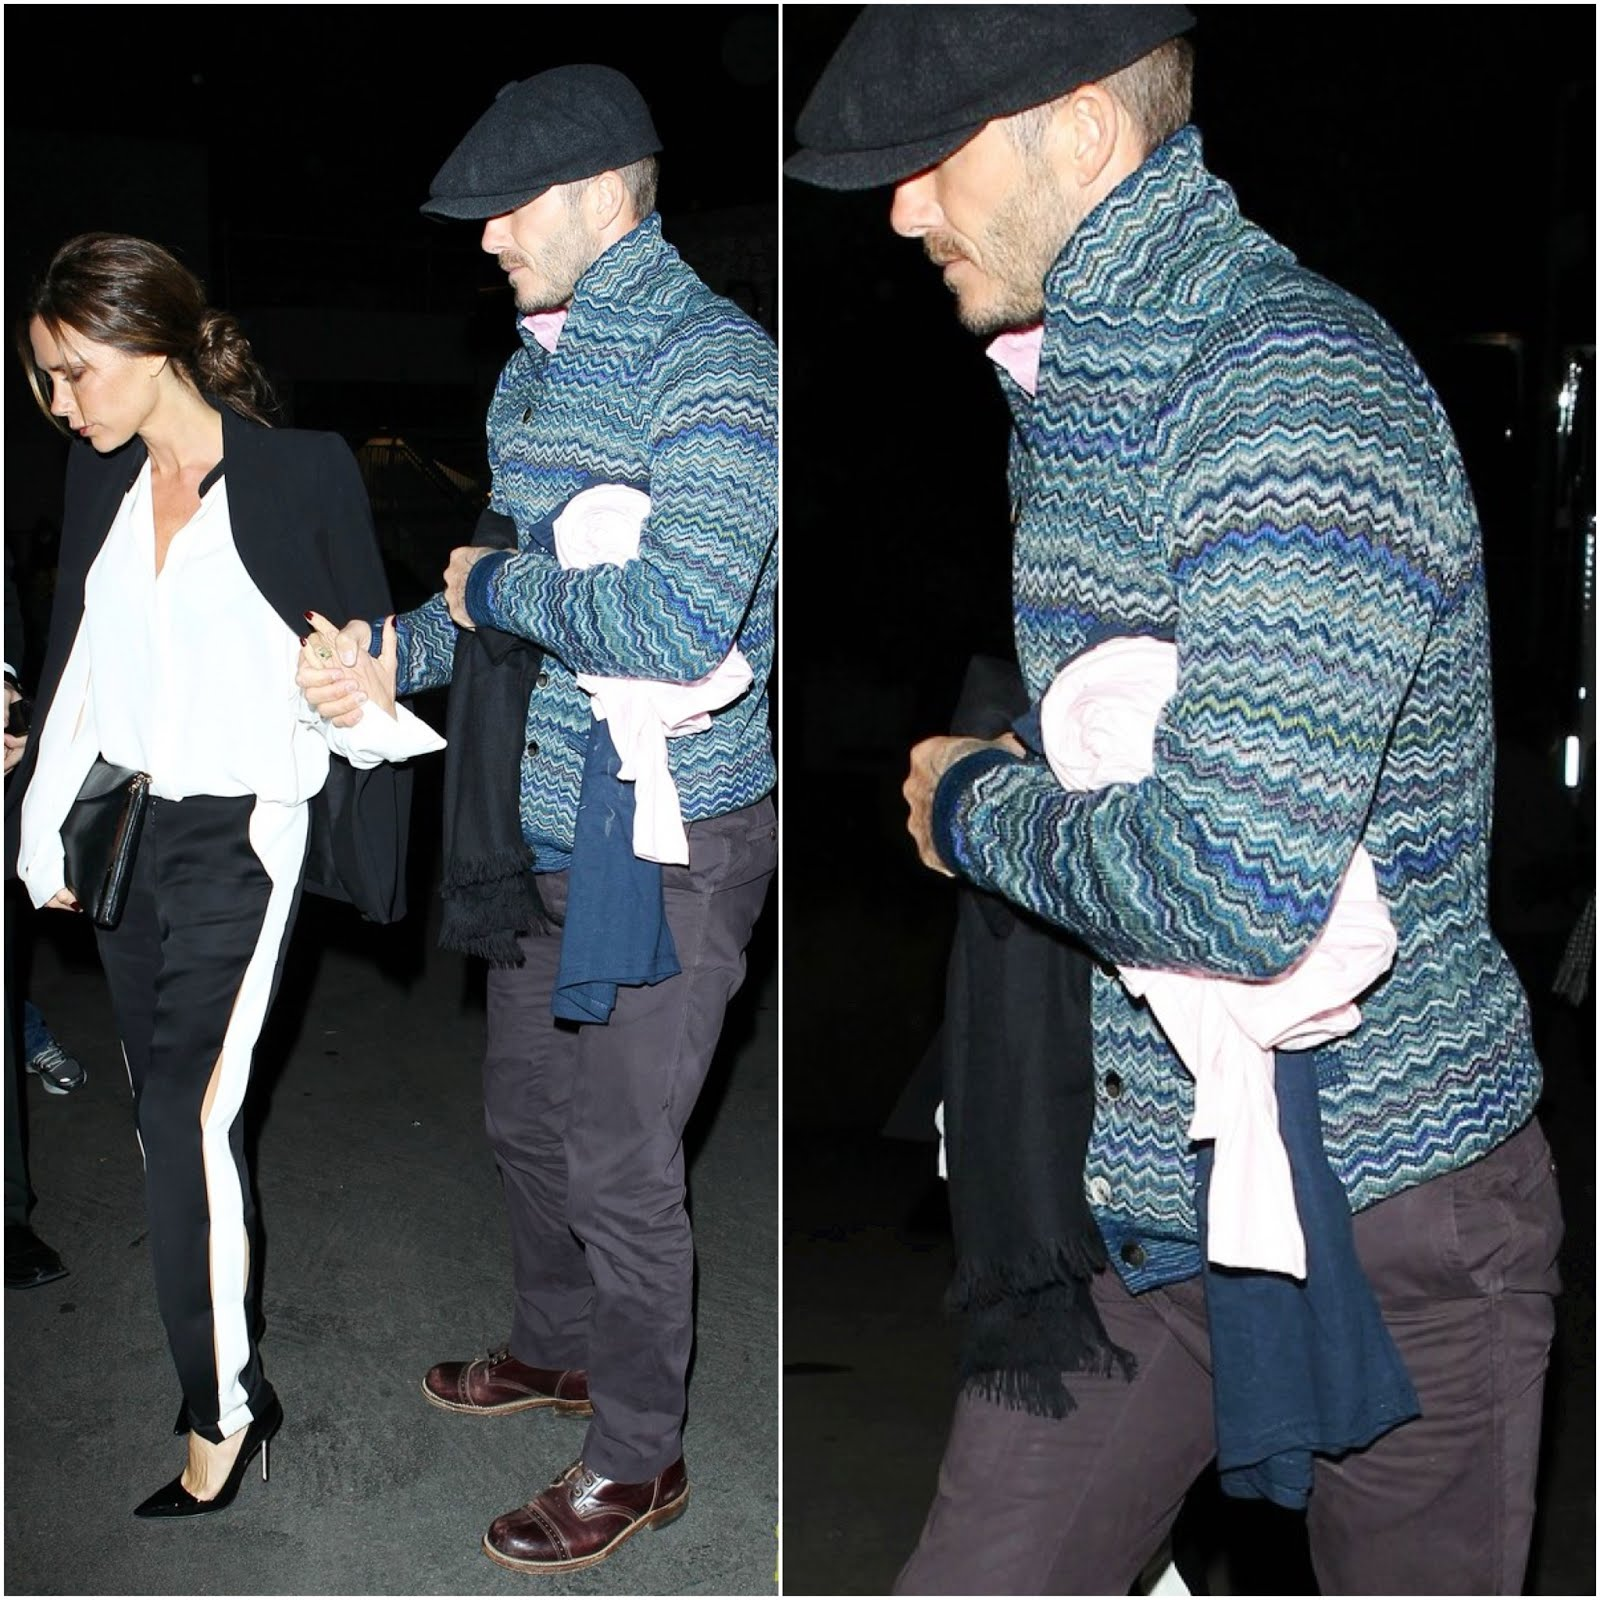 00O00 Menswear Blog London Celebrity Style David Beckham in Missoni Zigzag-Knit Wool-Blend Cardigan at Barbra Streisand concert, Hollywood